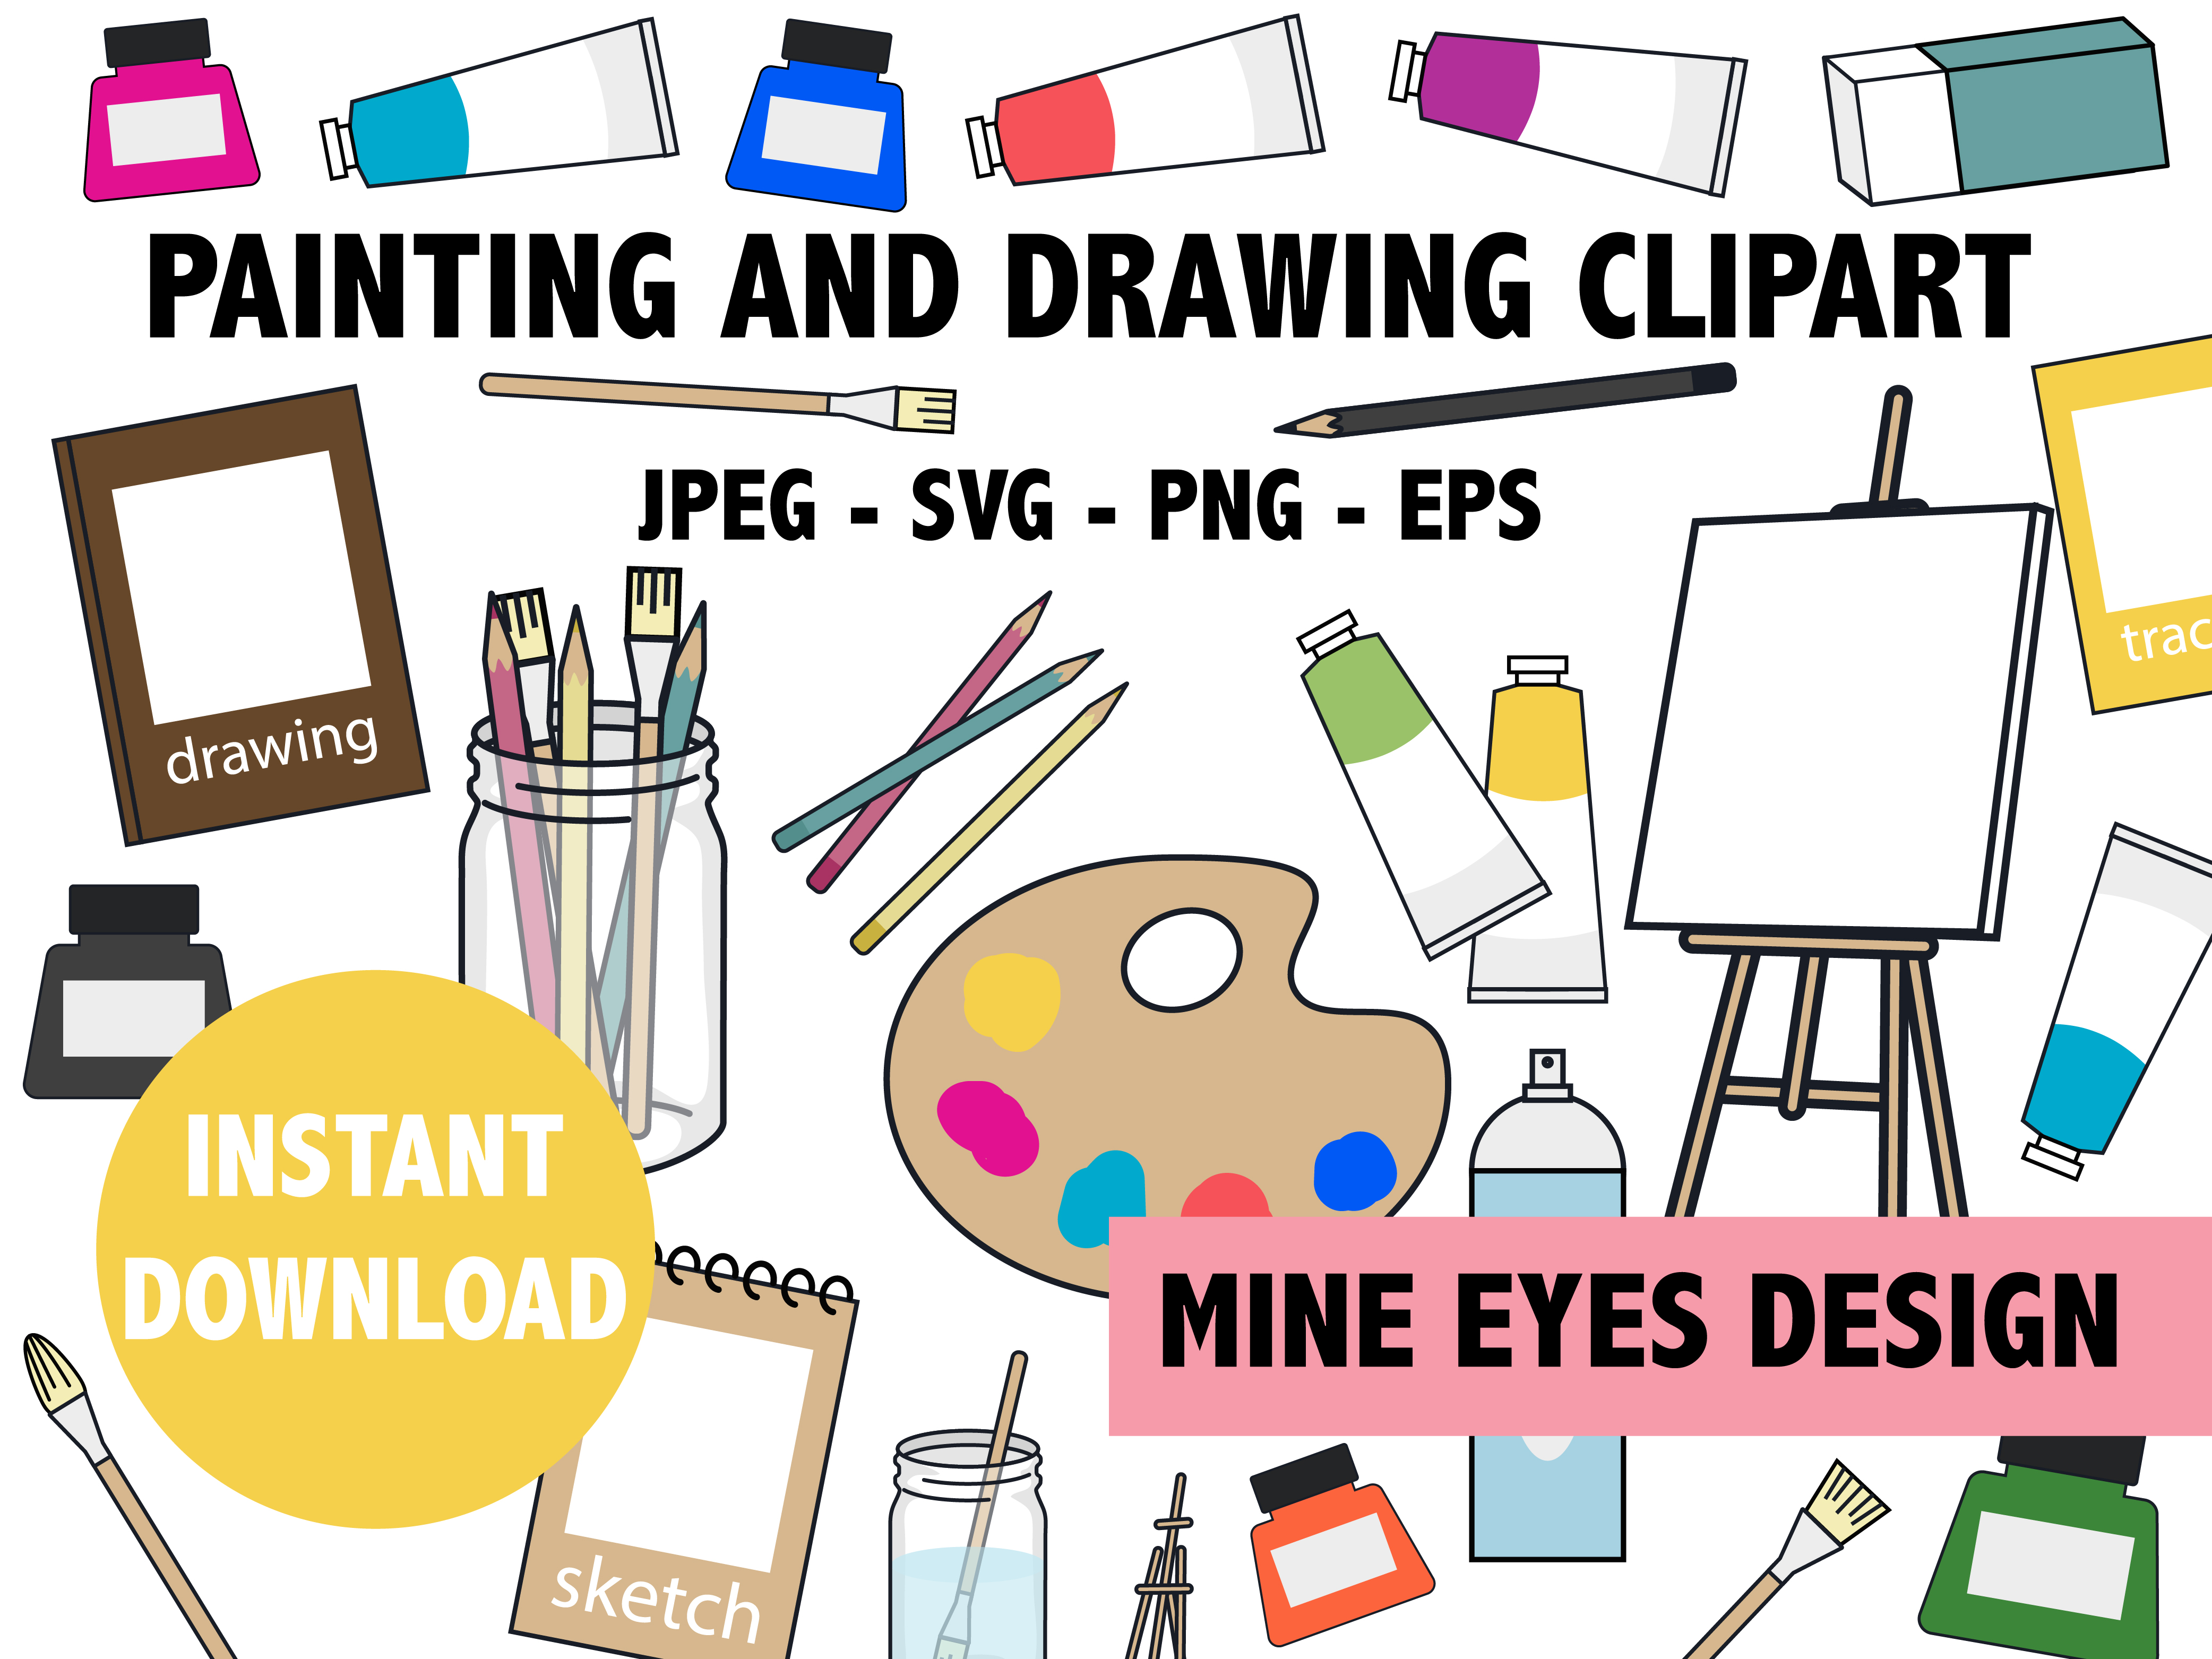 Download Free Painting And Drawing Clipart Graphic By Mine Eyes Design for Cricut Explore, Silhouette and other cutting machines.